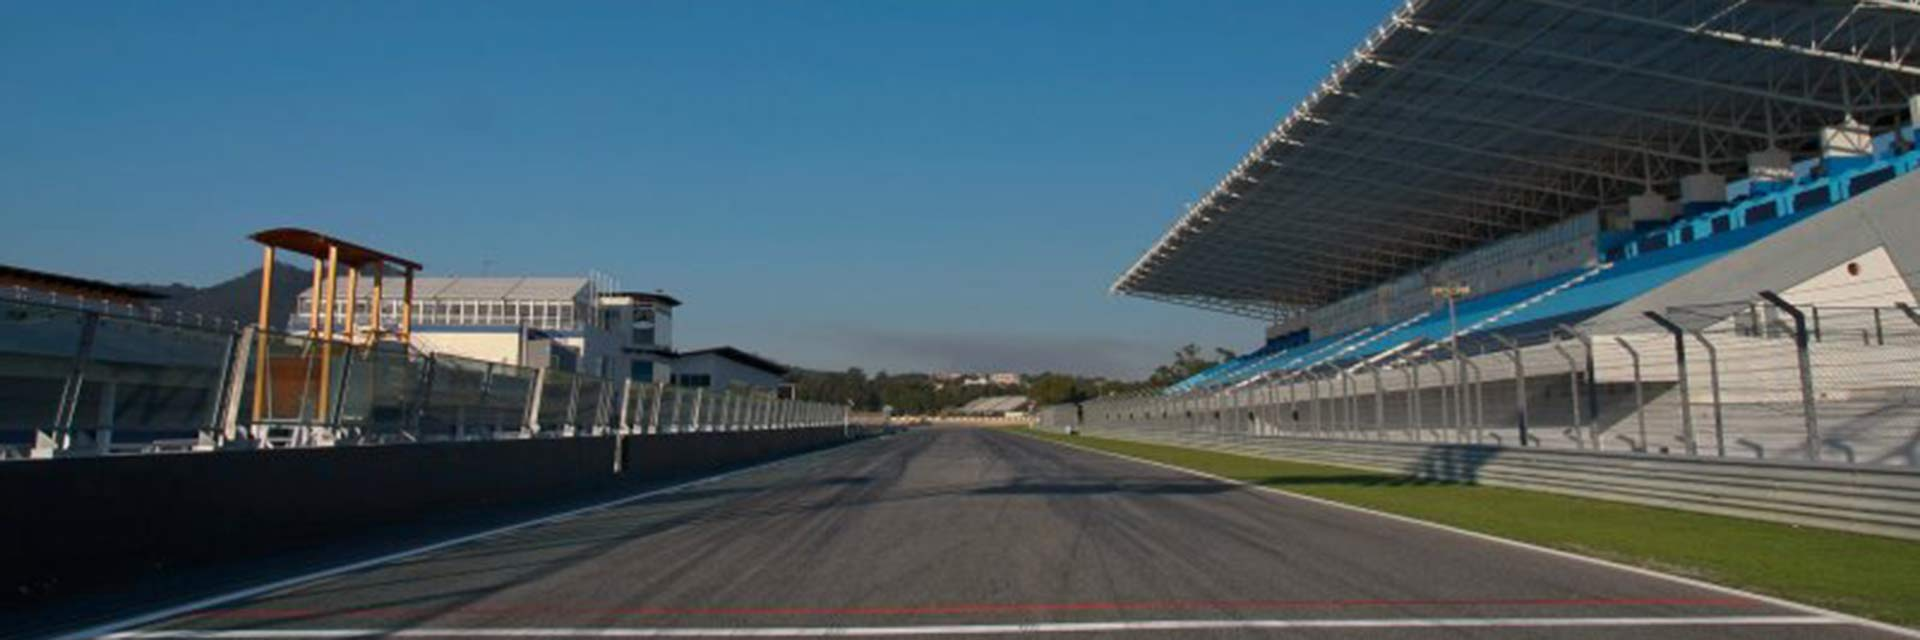 GEDLICH Racing - Racetrack Circuito do Estoril